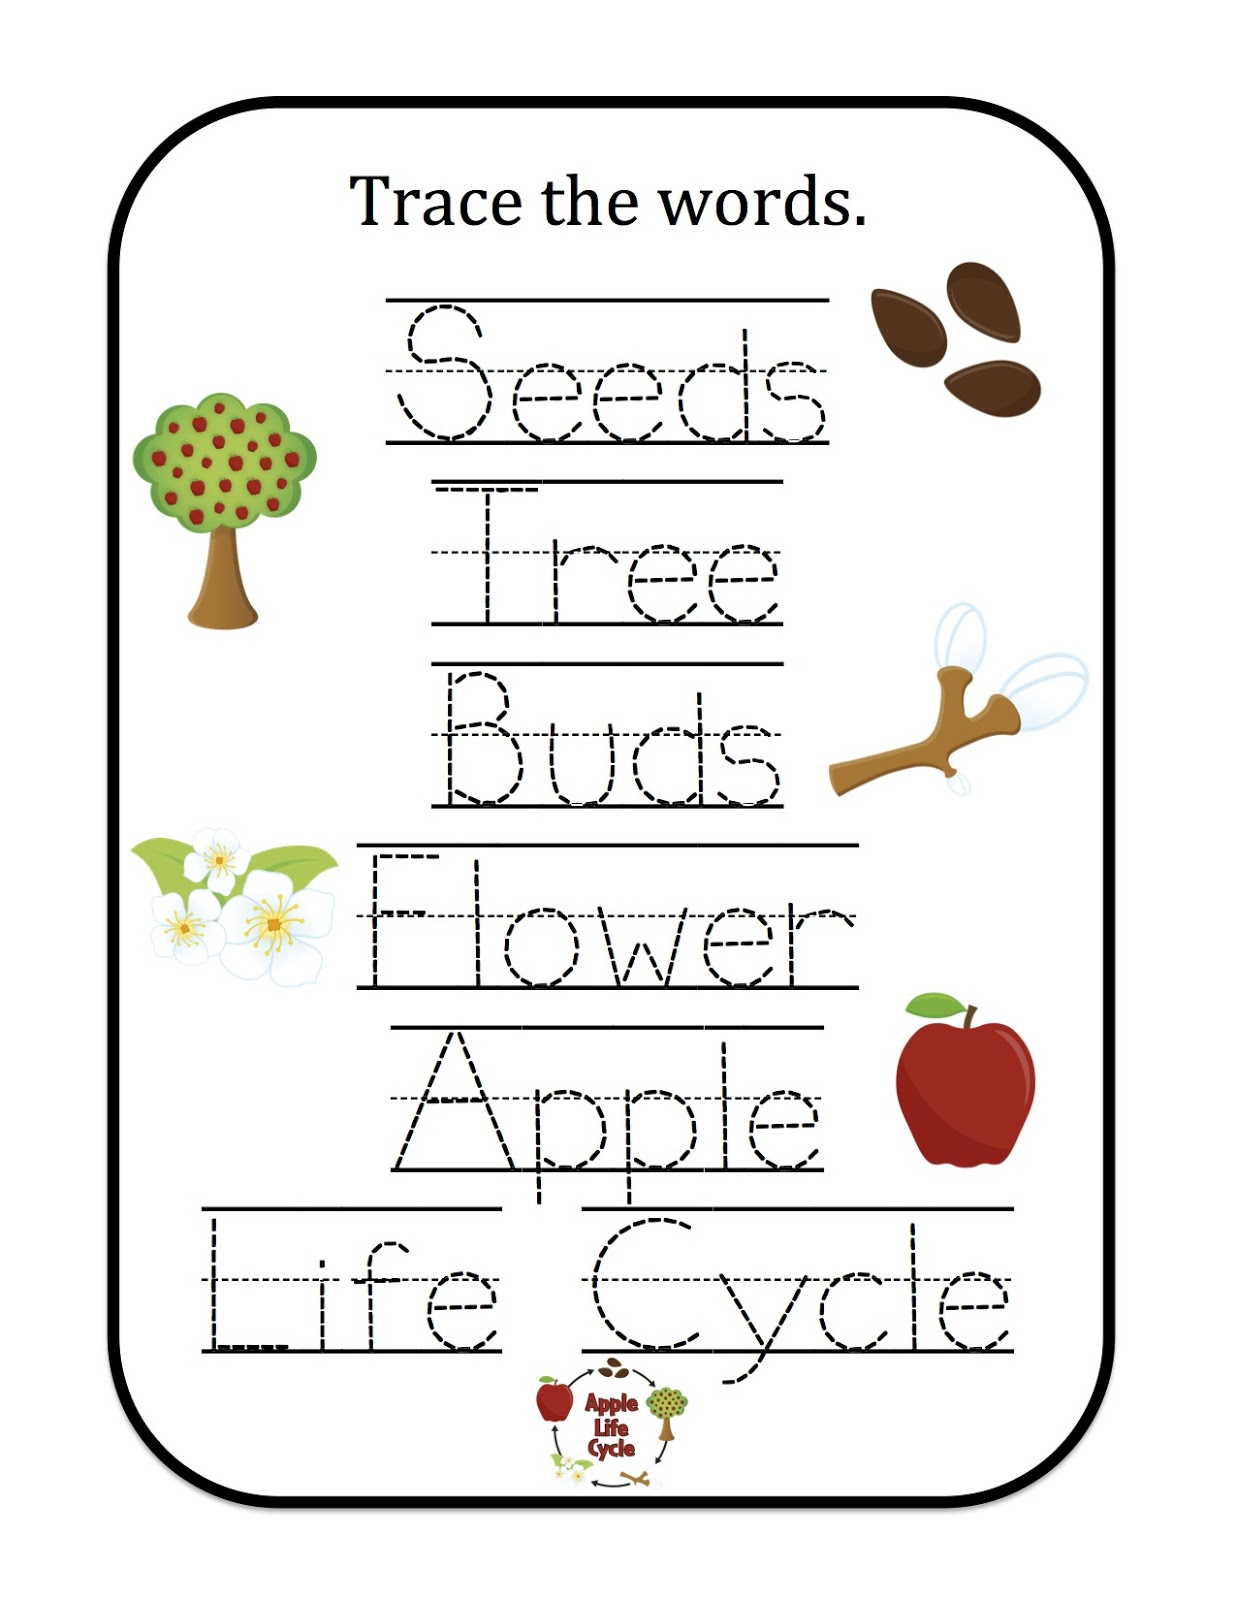 Apple Trace The Words 1 236 1 600 Pixels